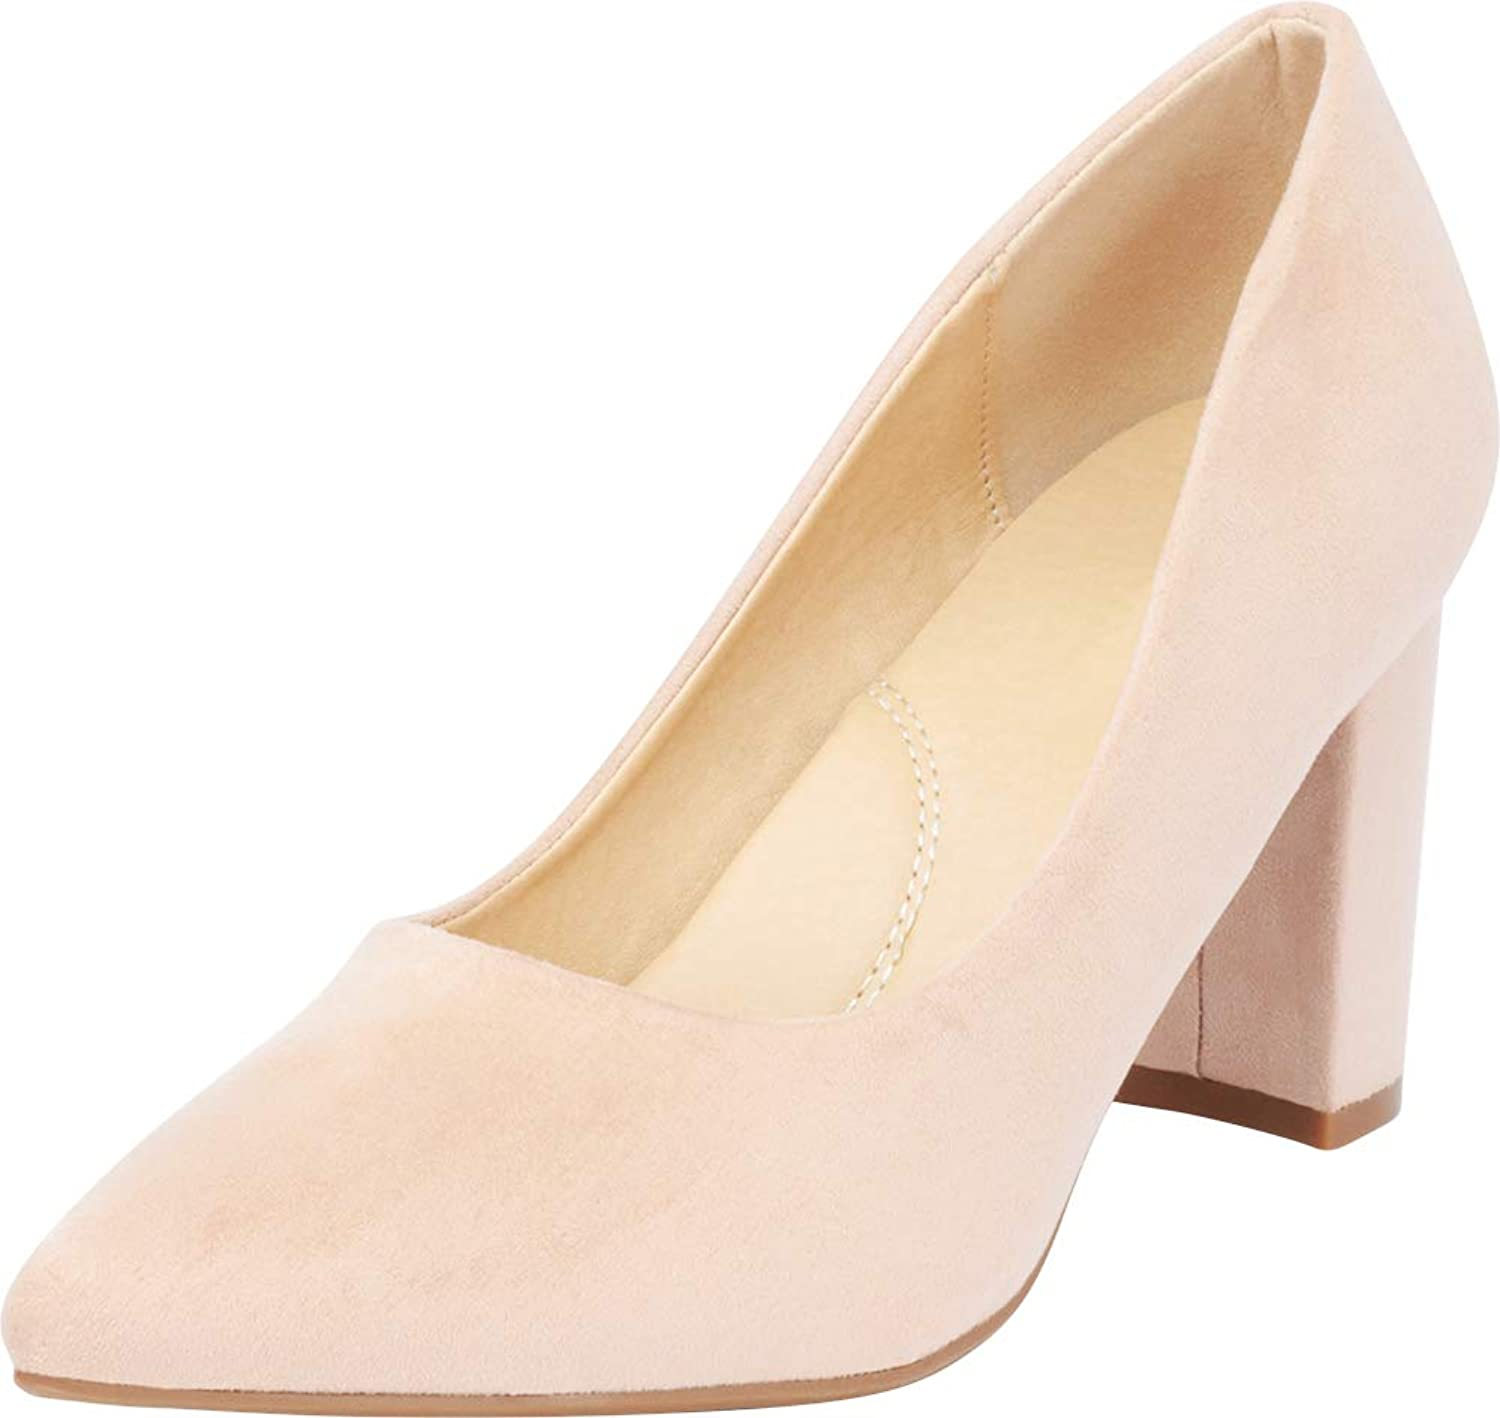 Cambridge Select Woherrar Pointed Toe Slip -on Chunky Block Block Block Heel Pump  het försäljning online